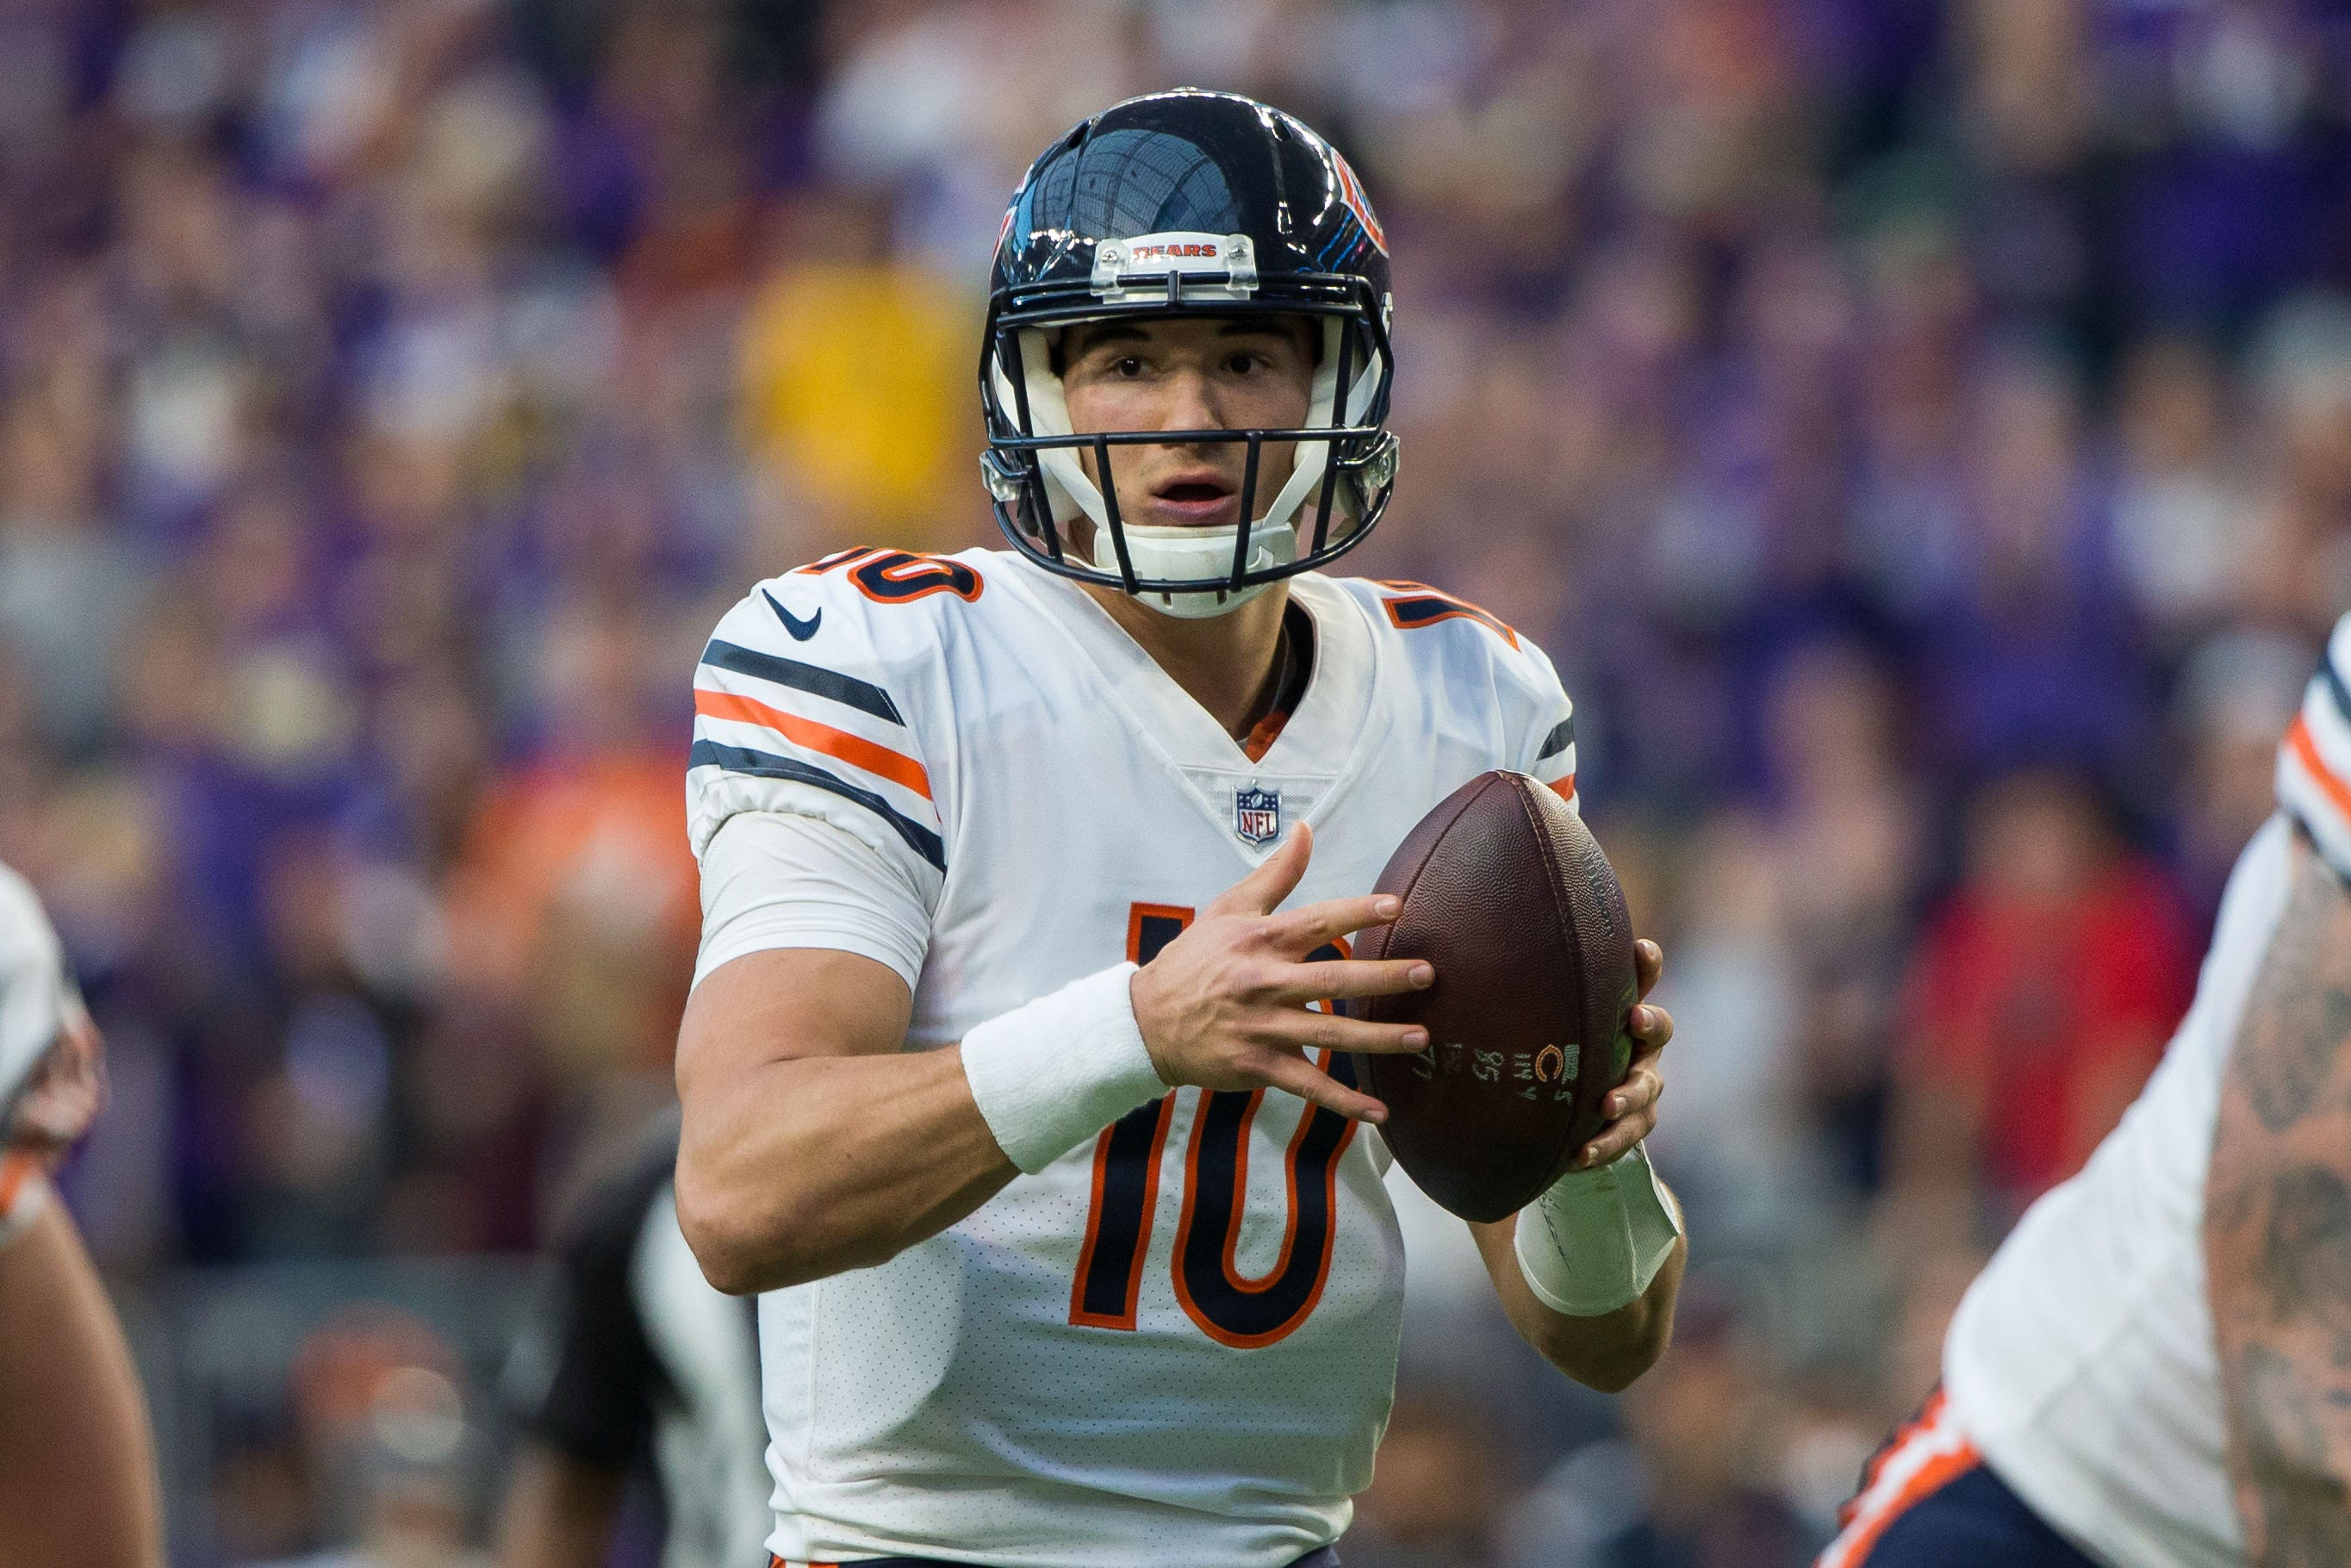 Three and out: Chicago Bears' 2018 NFL draft needs, prospect fits